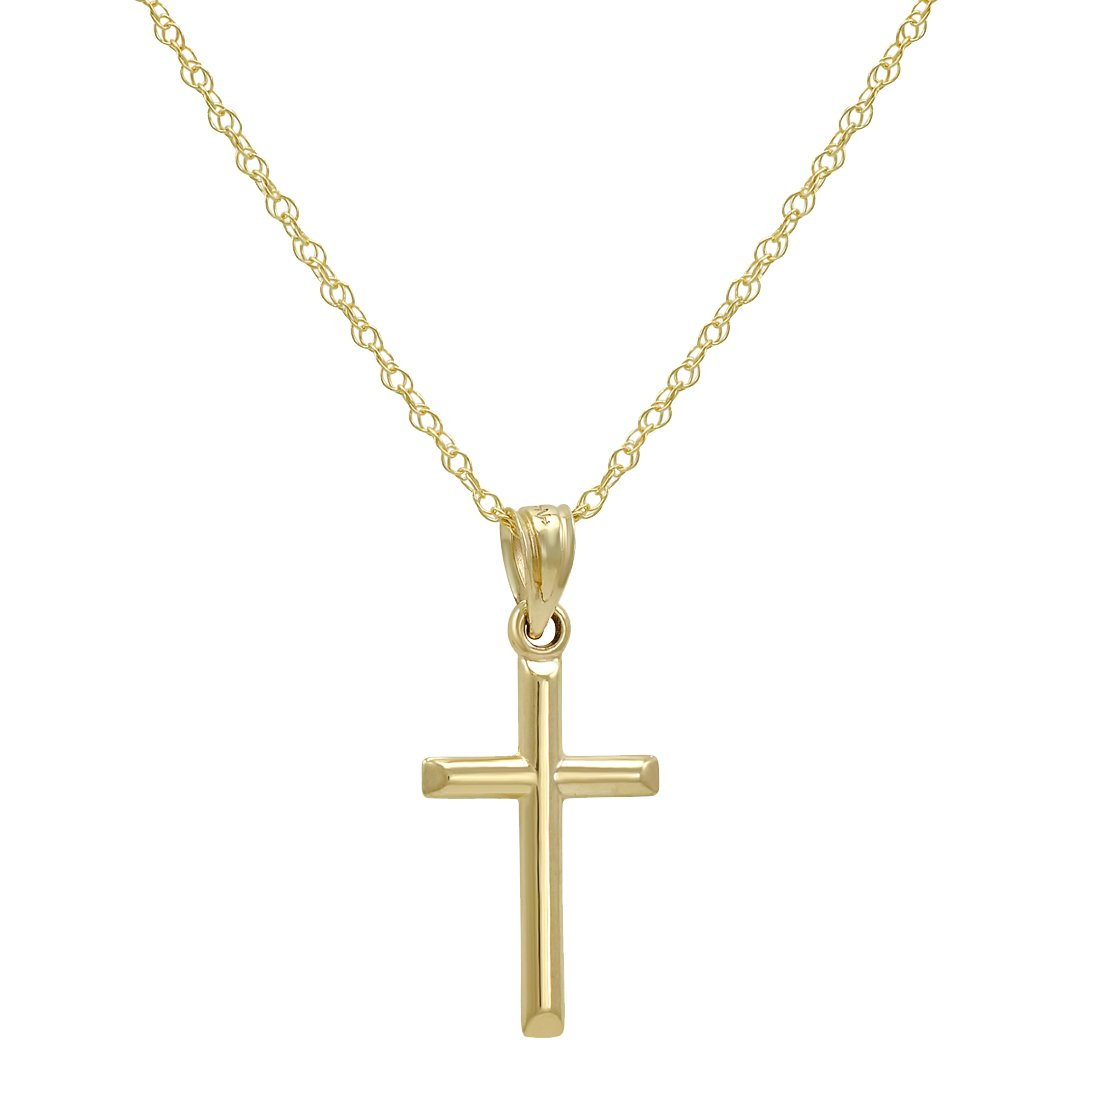 14k Yellow Gold Cross Pendant Necklace on an 18 in. chain by Amanda Rose Collection